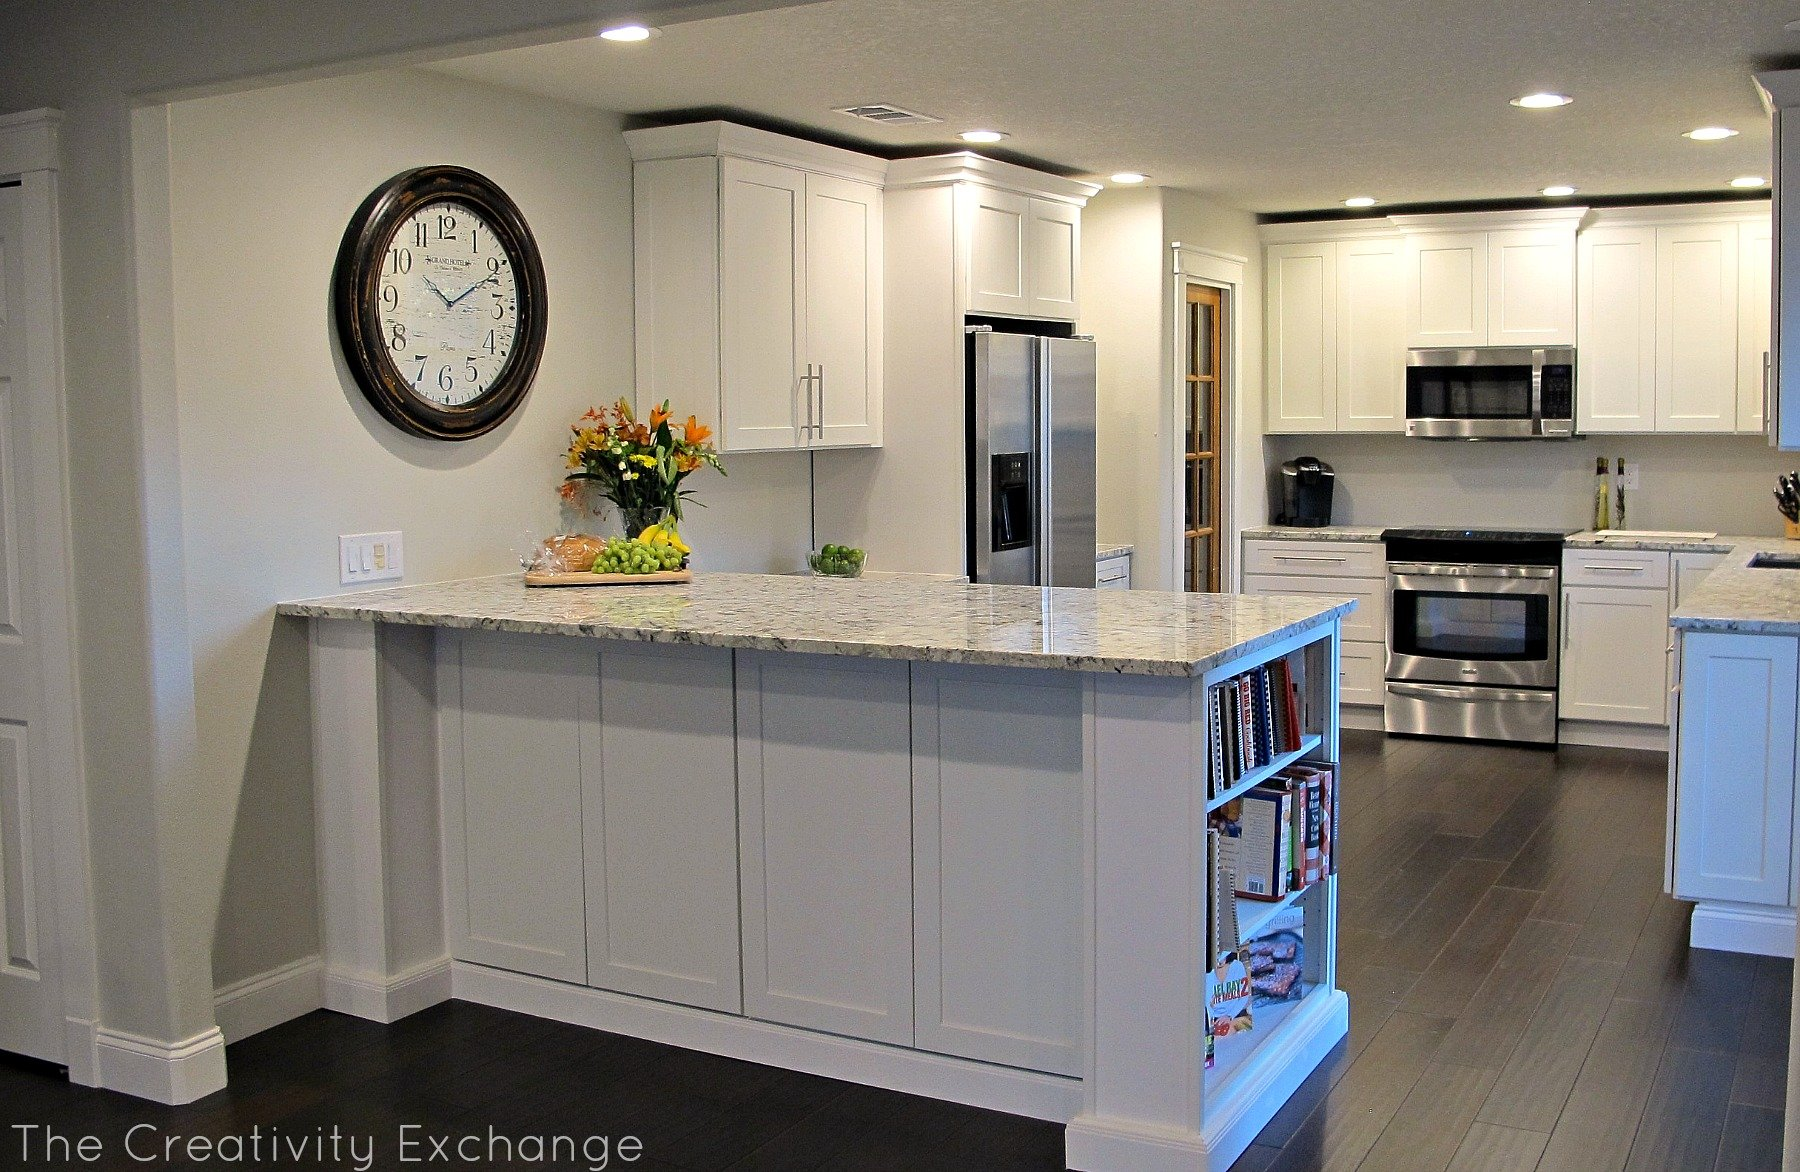 Before And After Kitchen Remodel Ideas white kitchen remodel before and after amazing beforeandafter